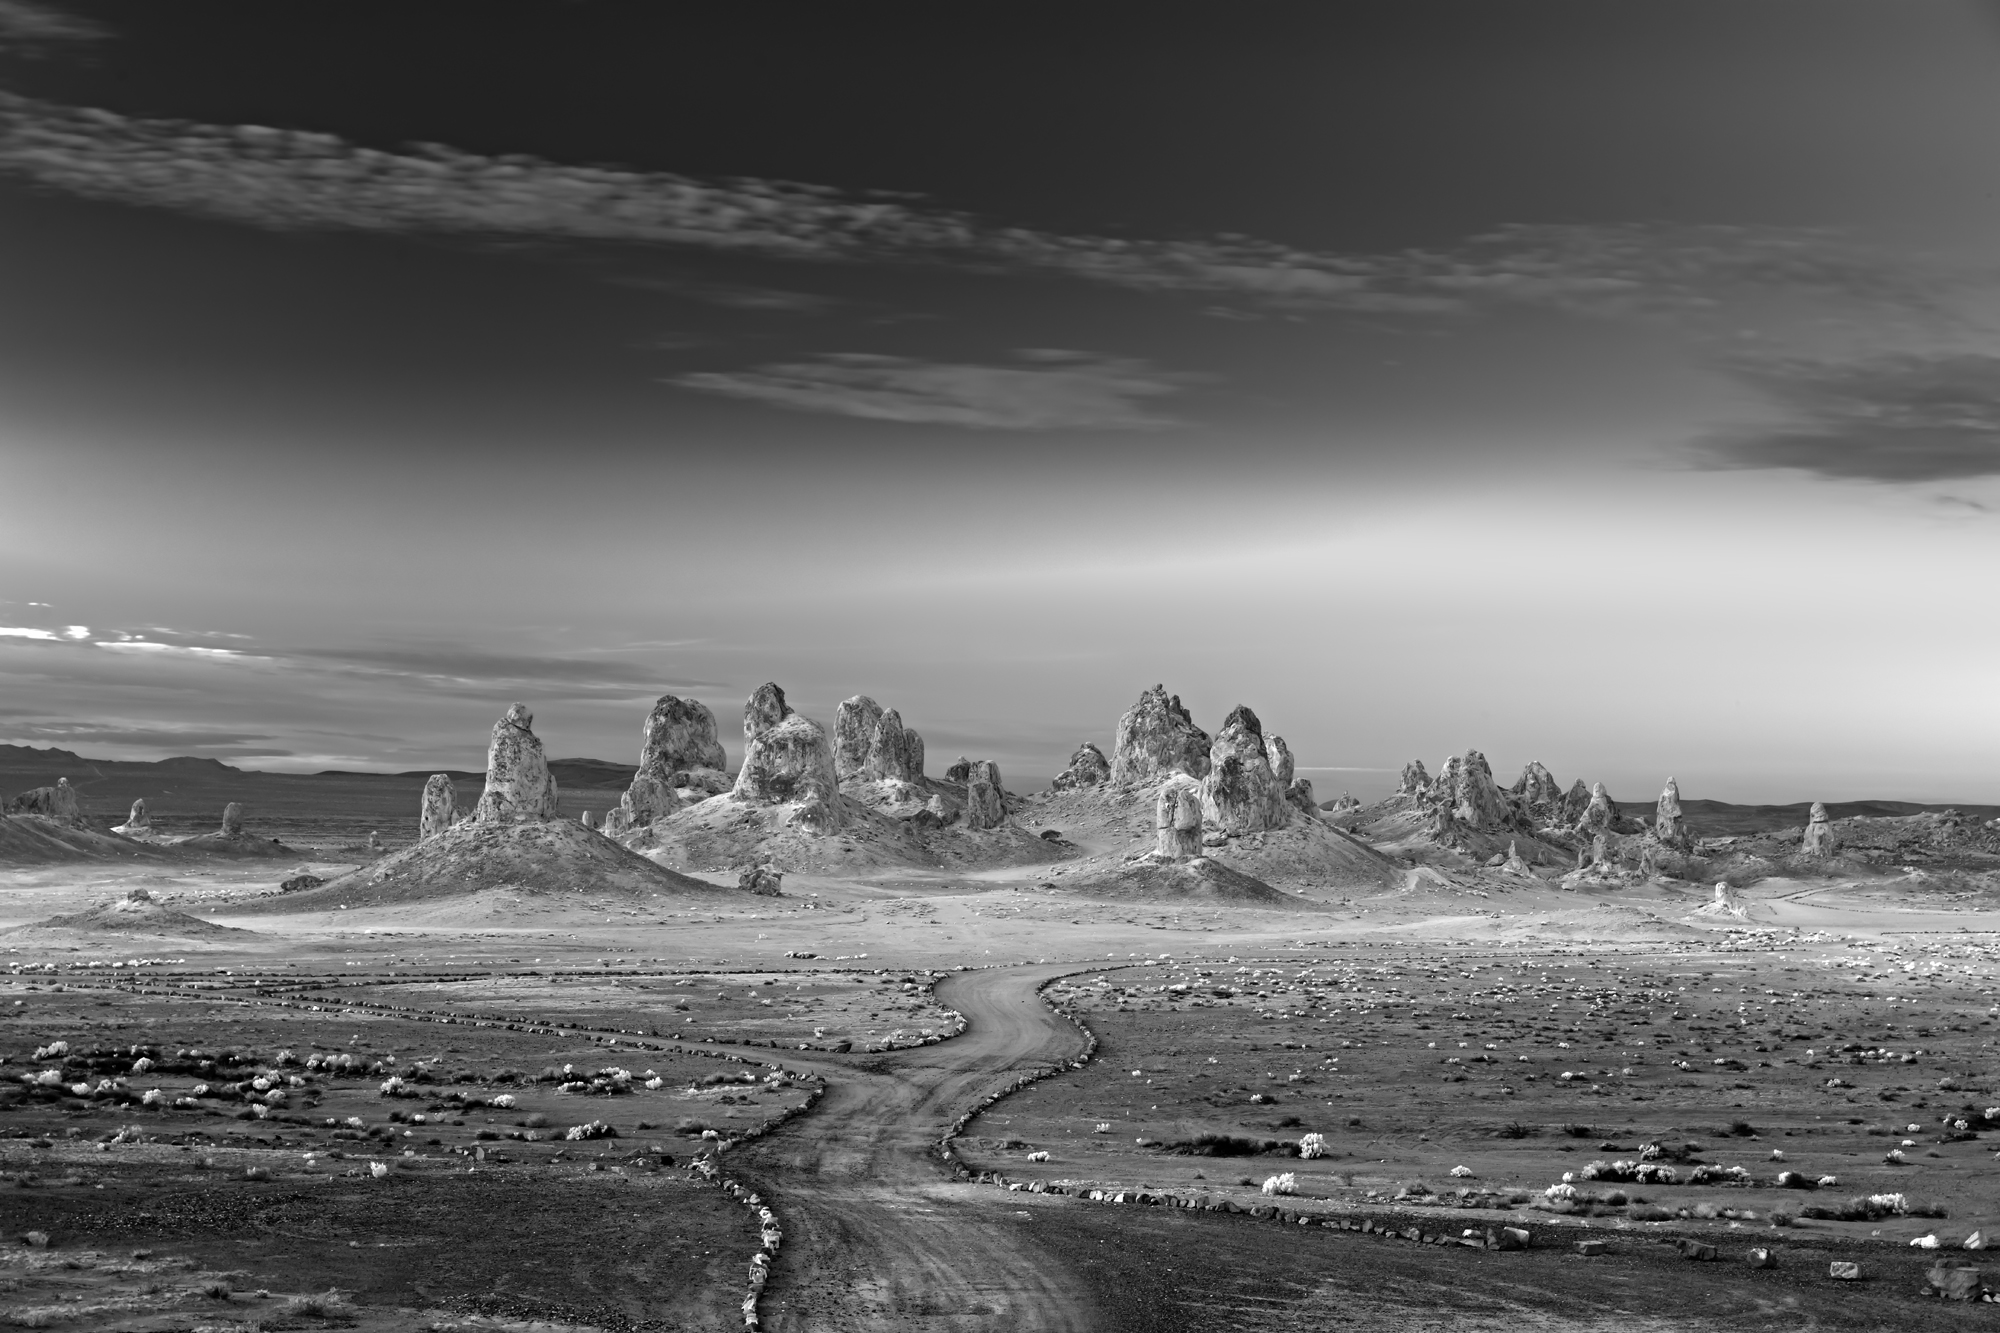 Natron Sunrise, Mitch Dobrowner, Catherine Couturier Gallery